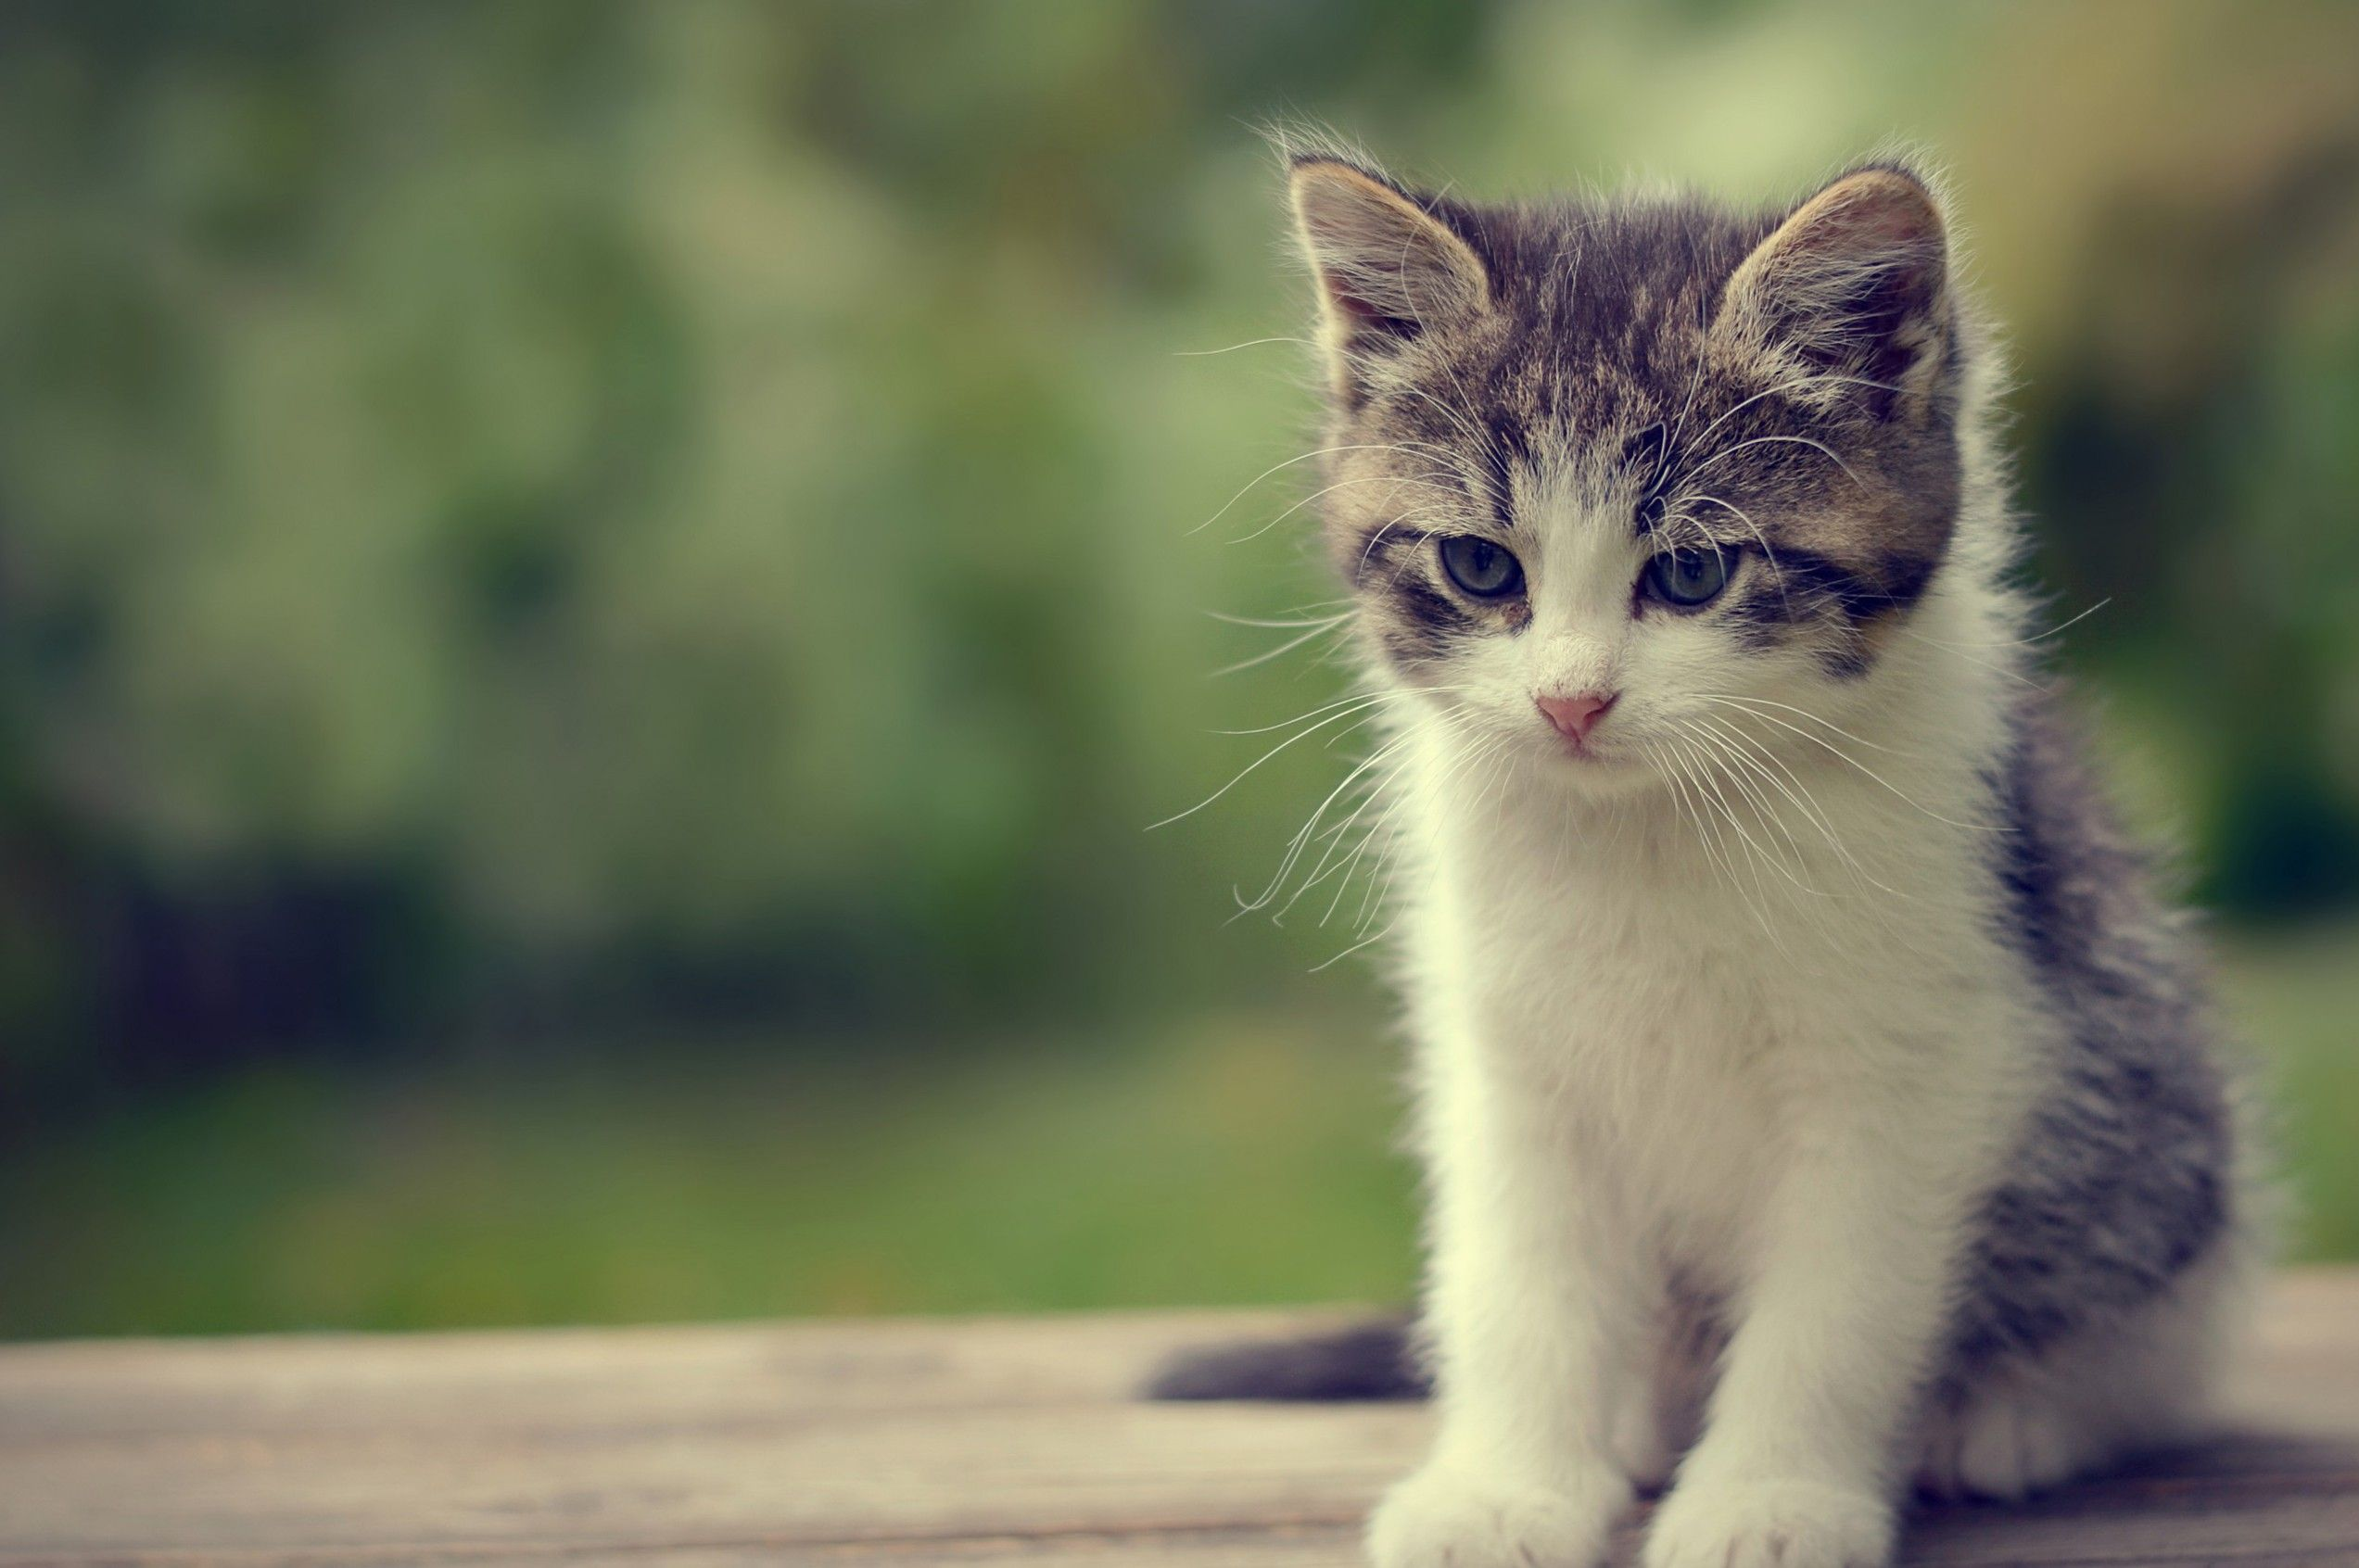 All Cat Wallpapers Wallpapers Free Download Cute Cat Wallpaper 1 Cute Cat Wallpaper Crazy Cats Cute Cats And Kittens